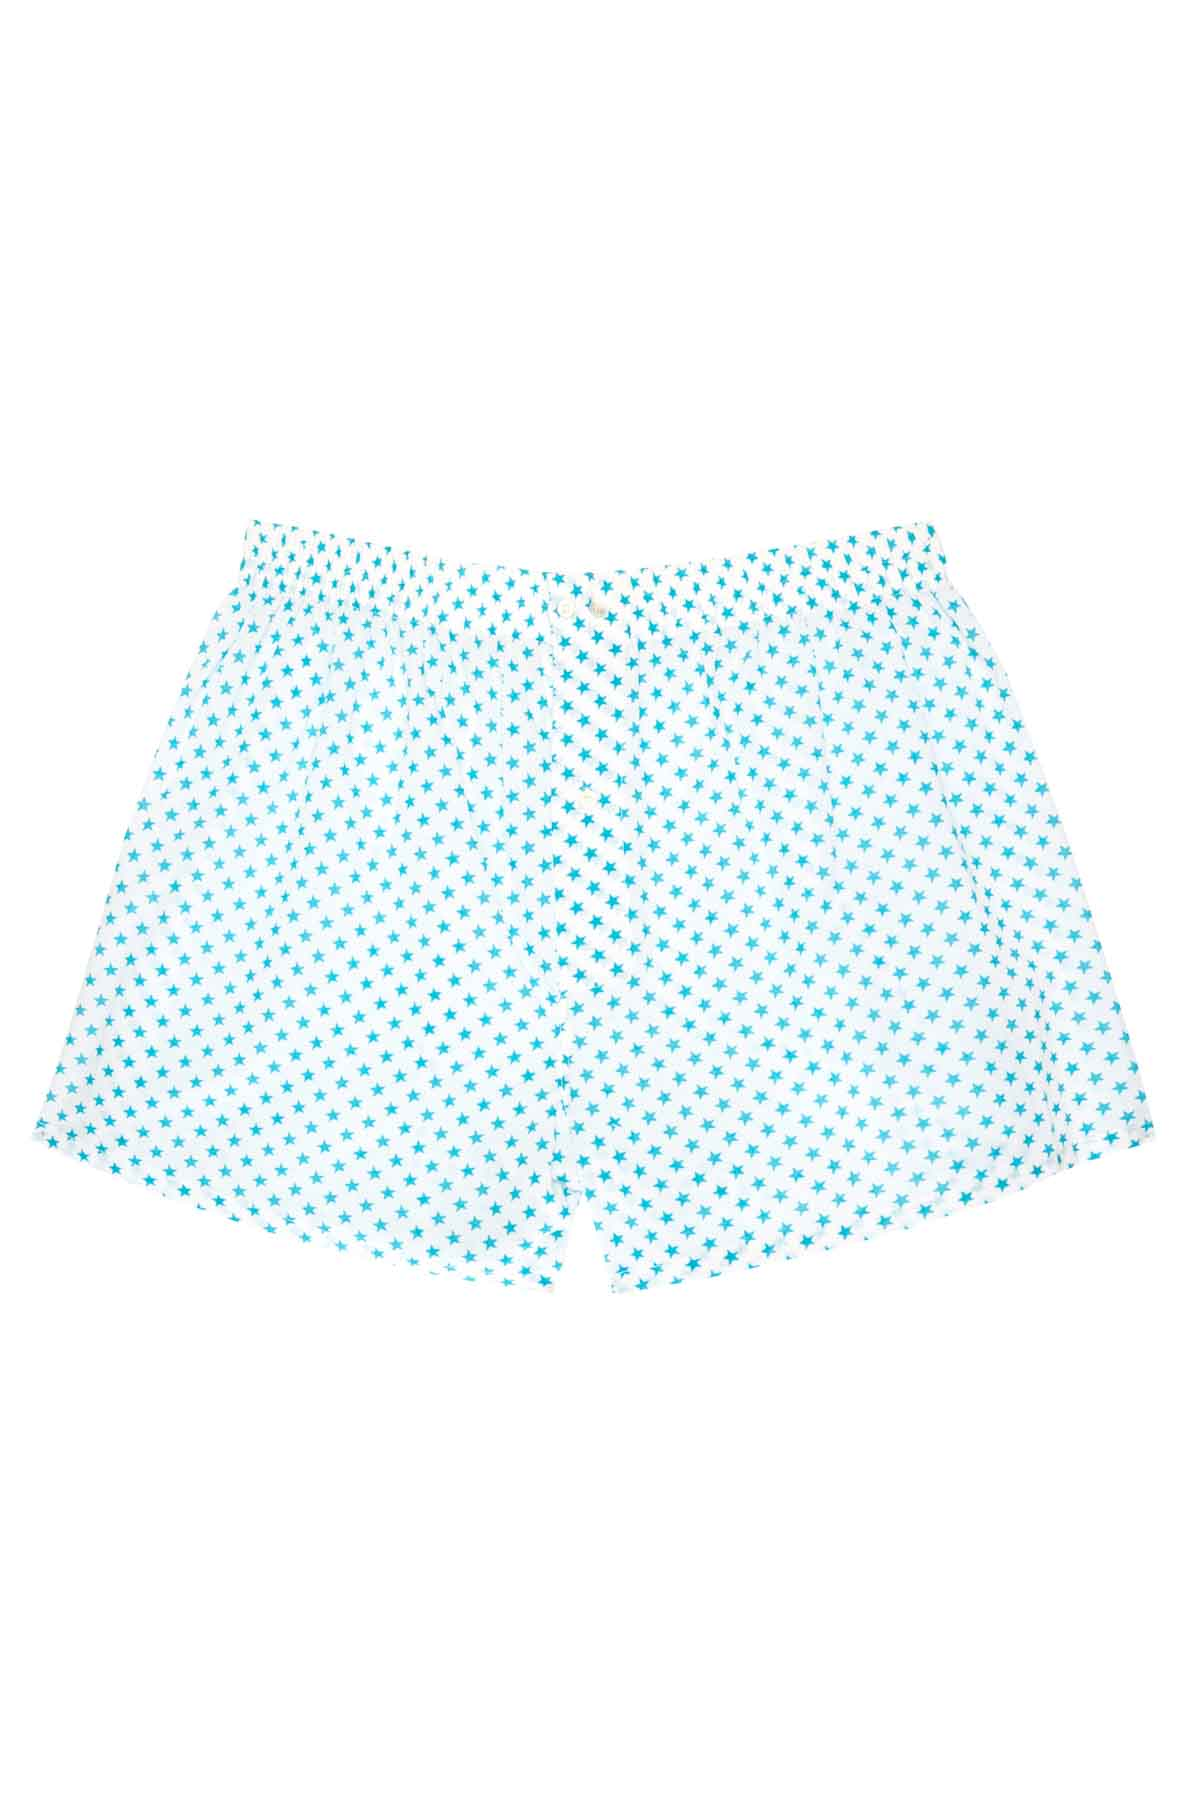 Men's Boxers - Large Turquoise Stars